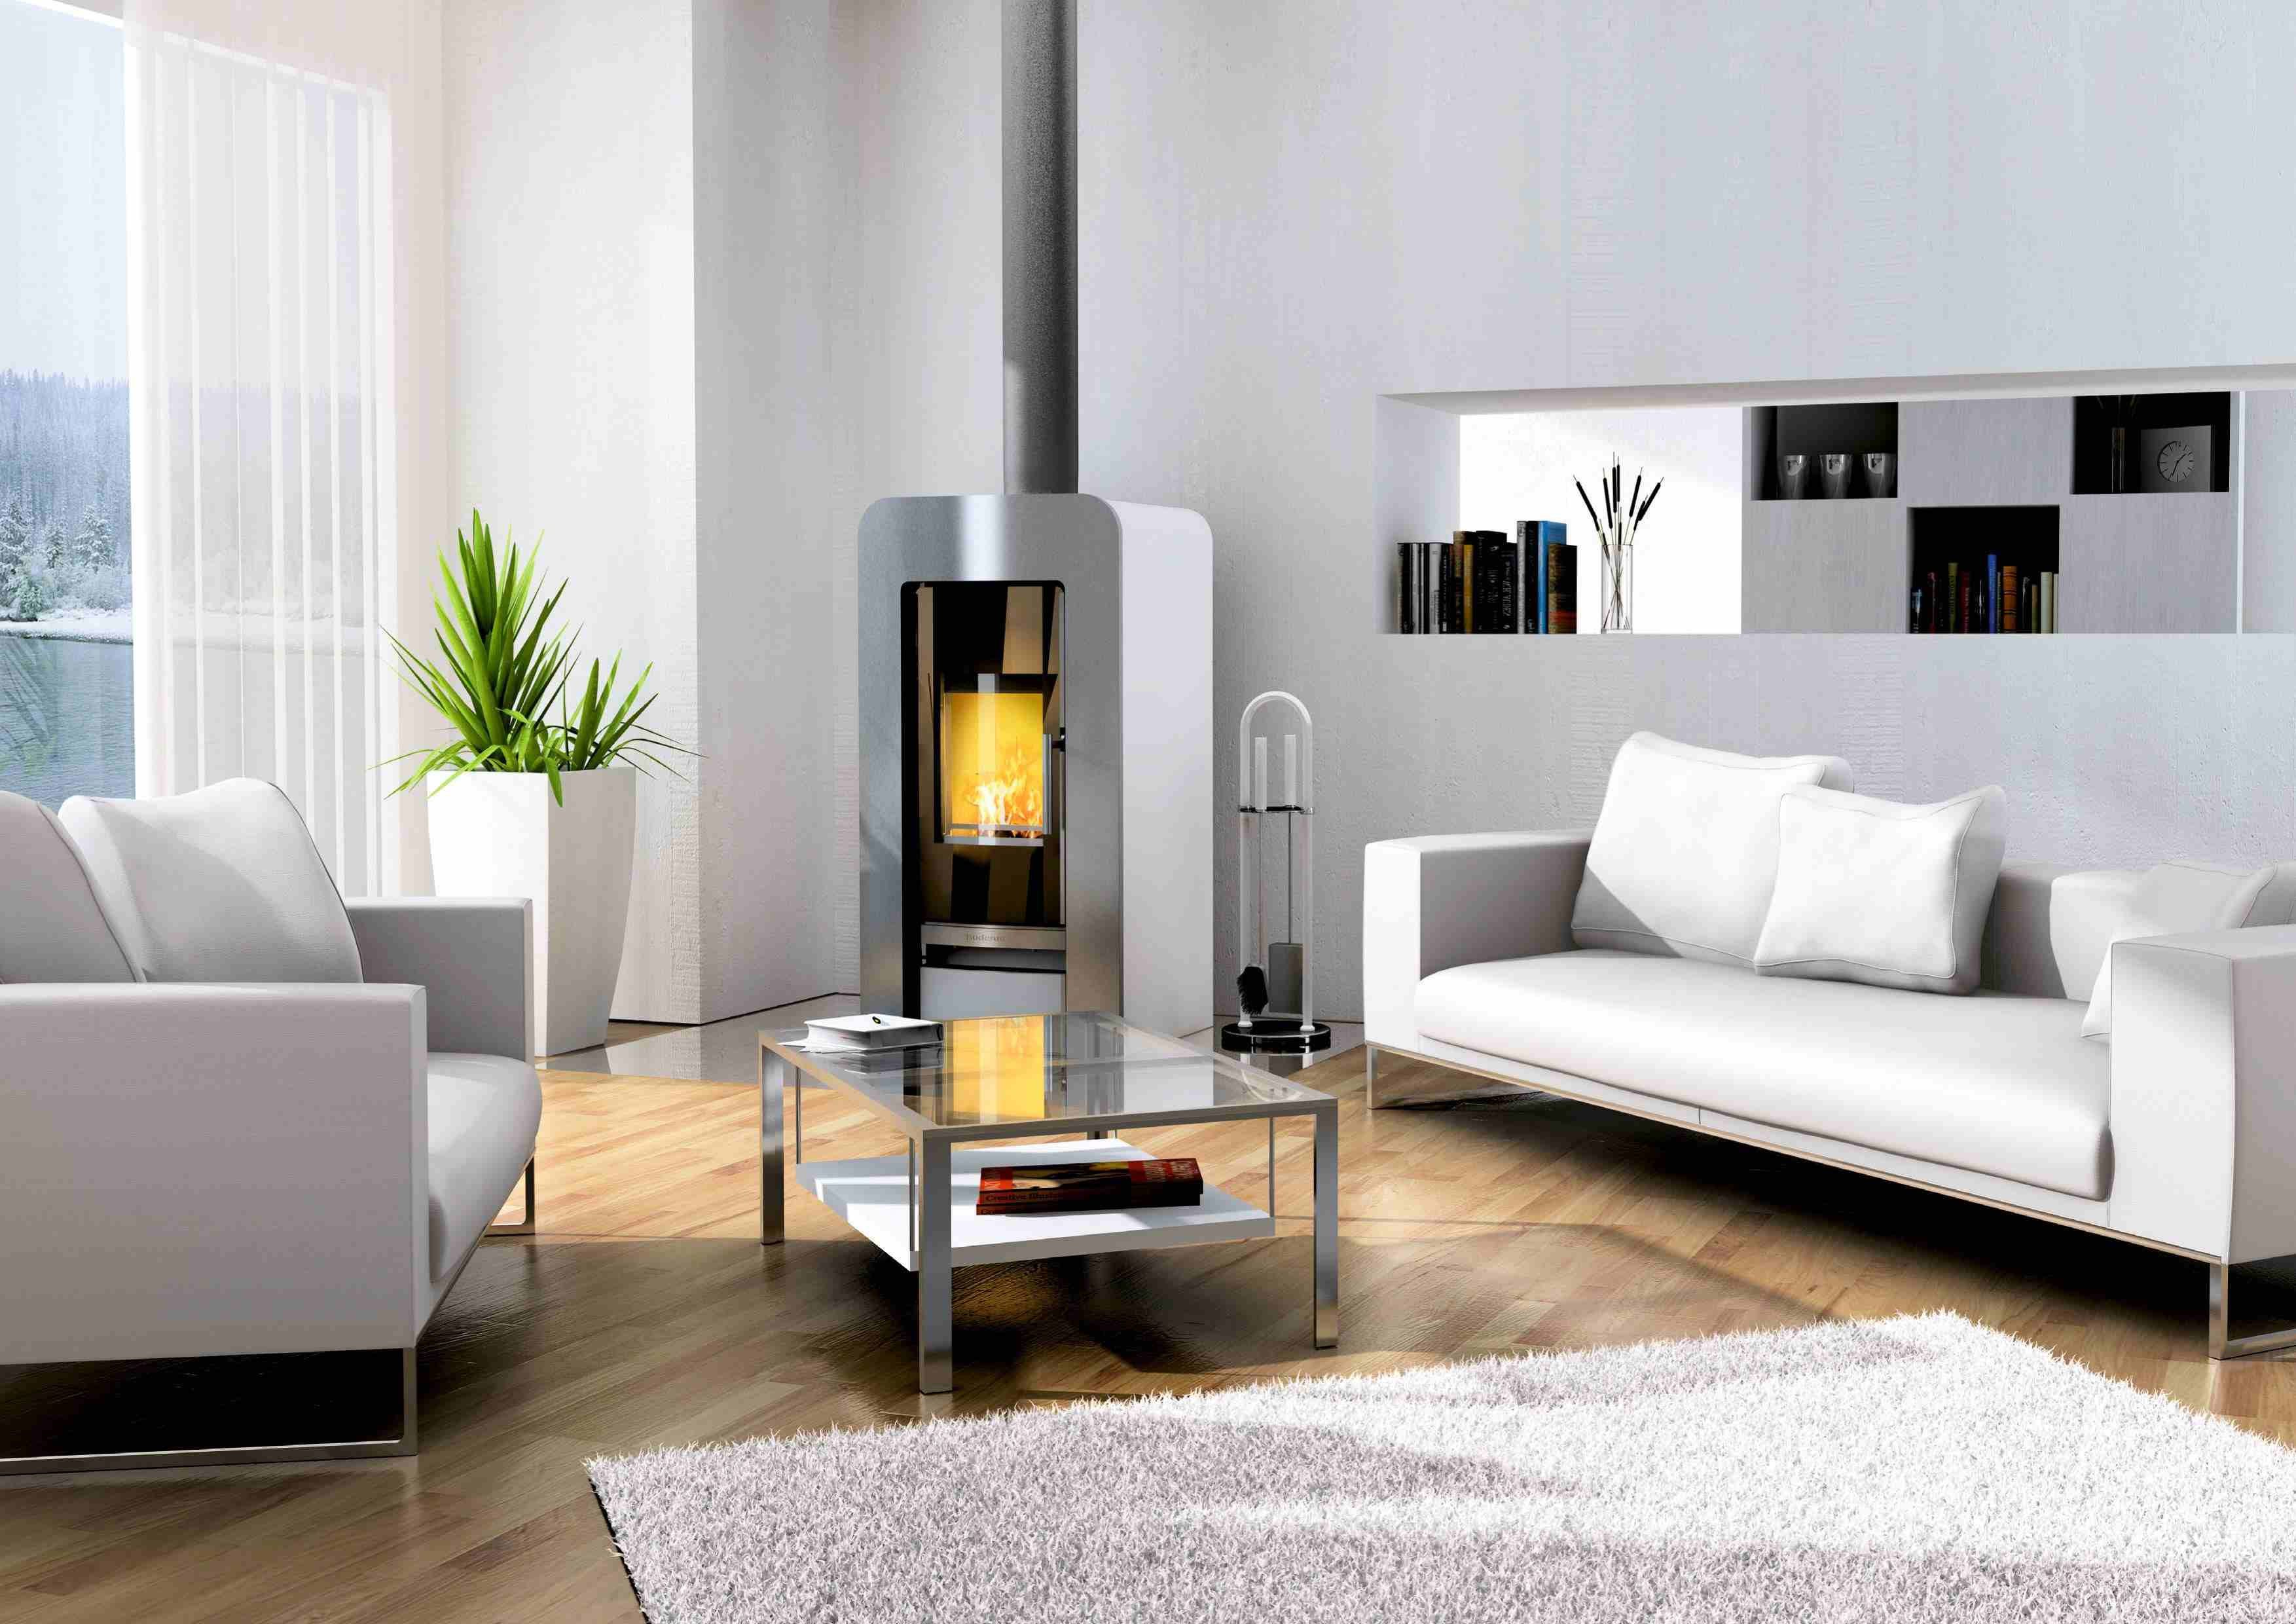 pelletheizung mit solar die ideale kombination. Black Bedroom Furniture Sets. Home Design Ideas